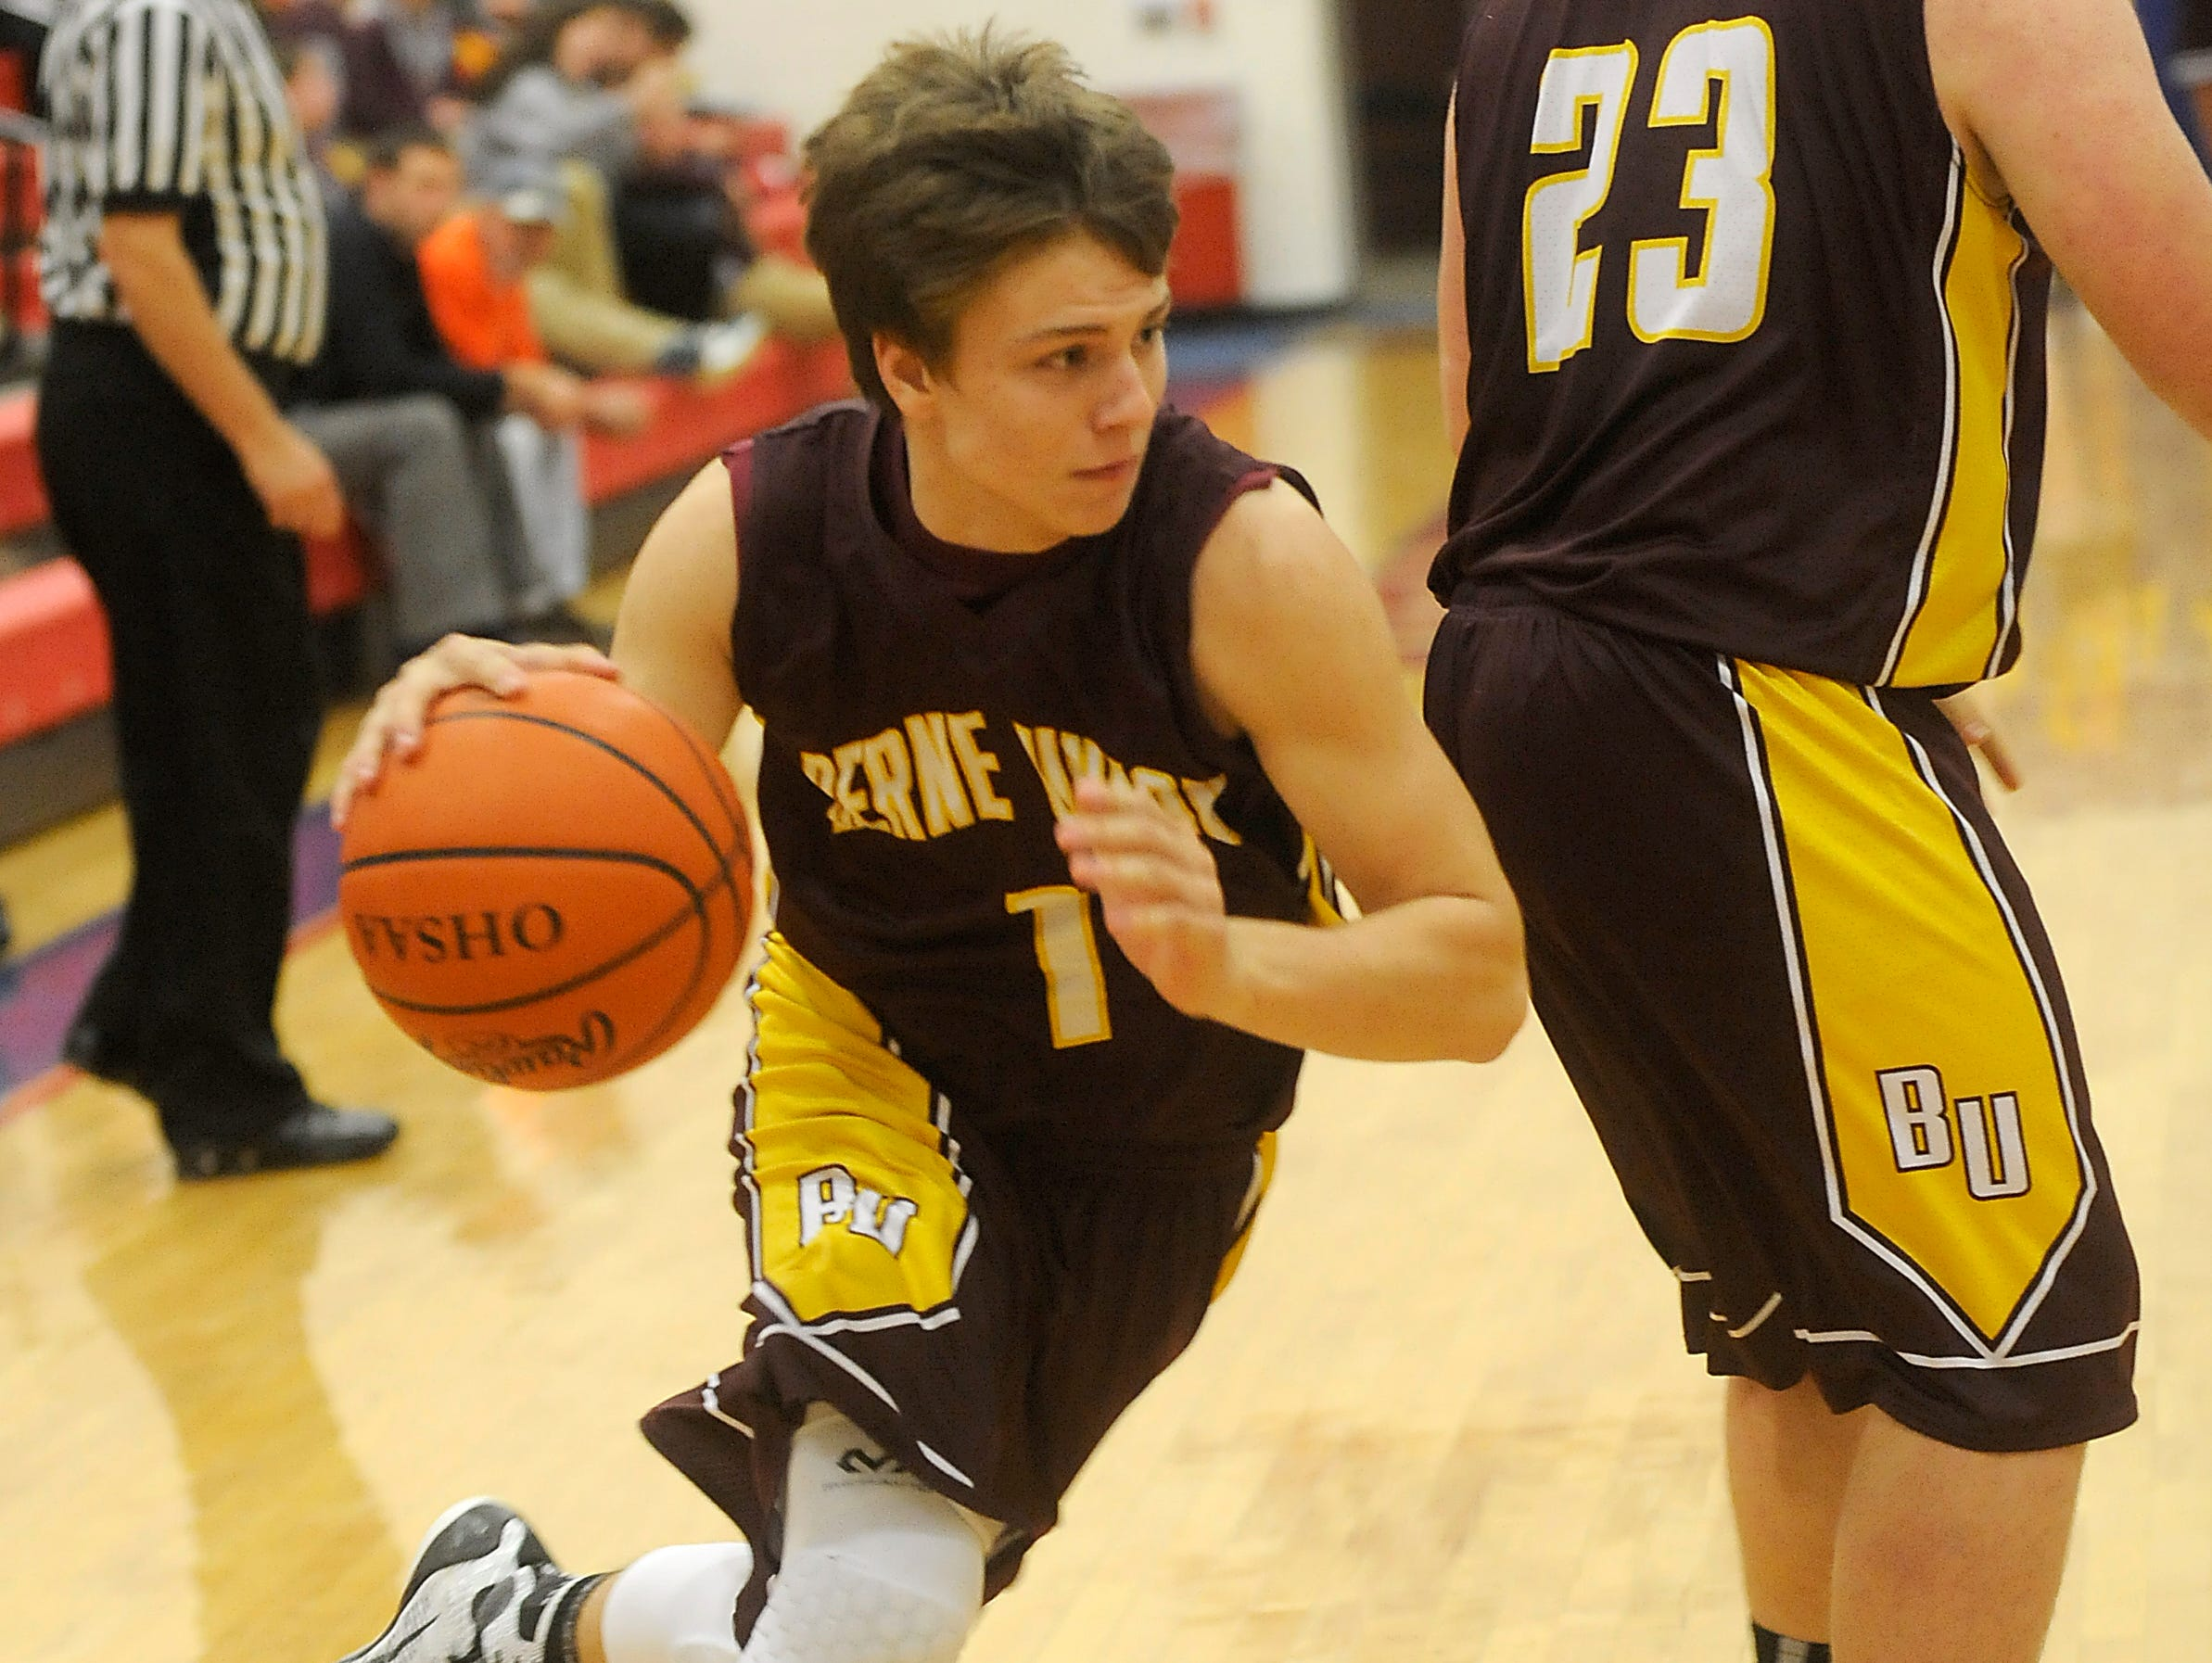 Berne Union's Hunter Mahlerwein runs in to the paint with the ball as teammate Braden Little screens for him against Lakewood on Wednesday, Dec. 2, 2015. The Rockets lost to Lakewood 58-47.